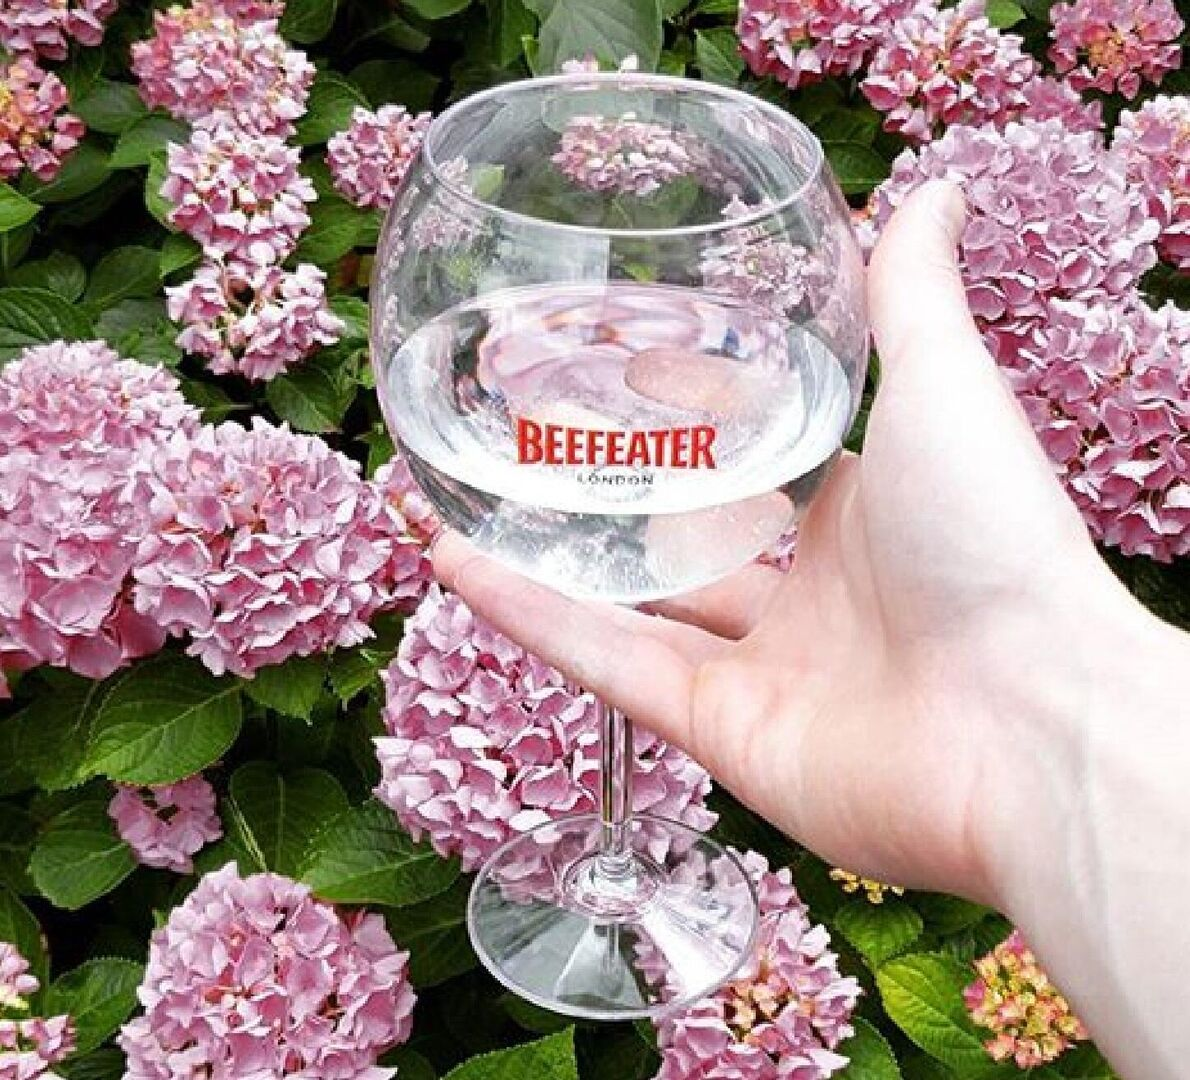 Cheers to Beefeater London Dry Gin